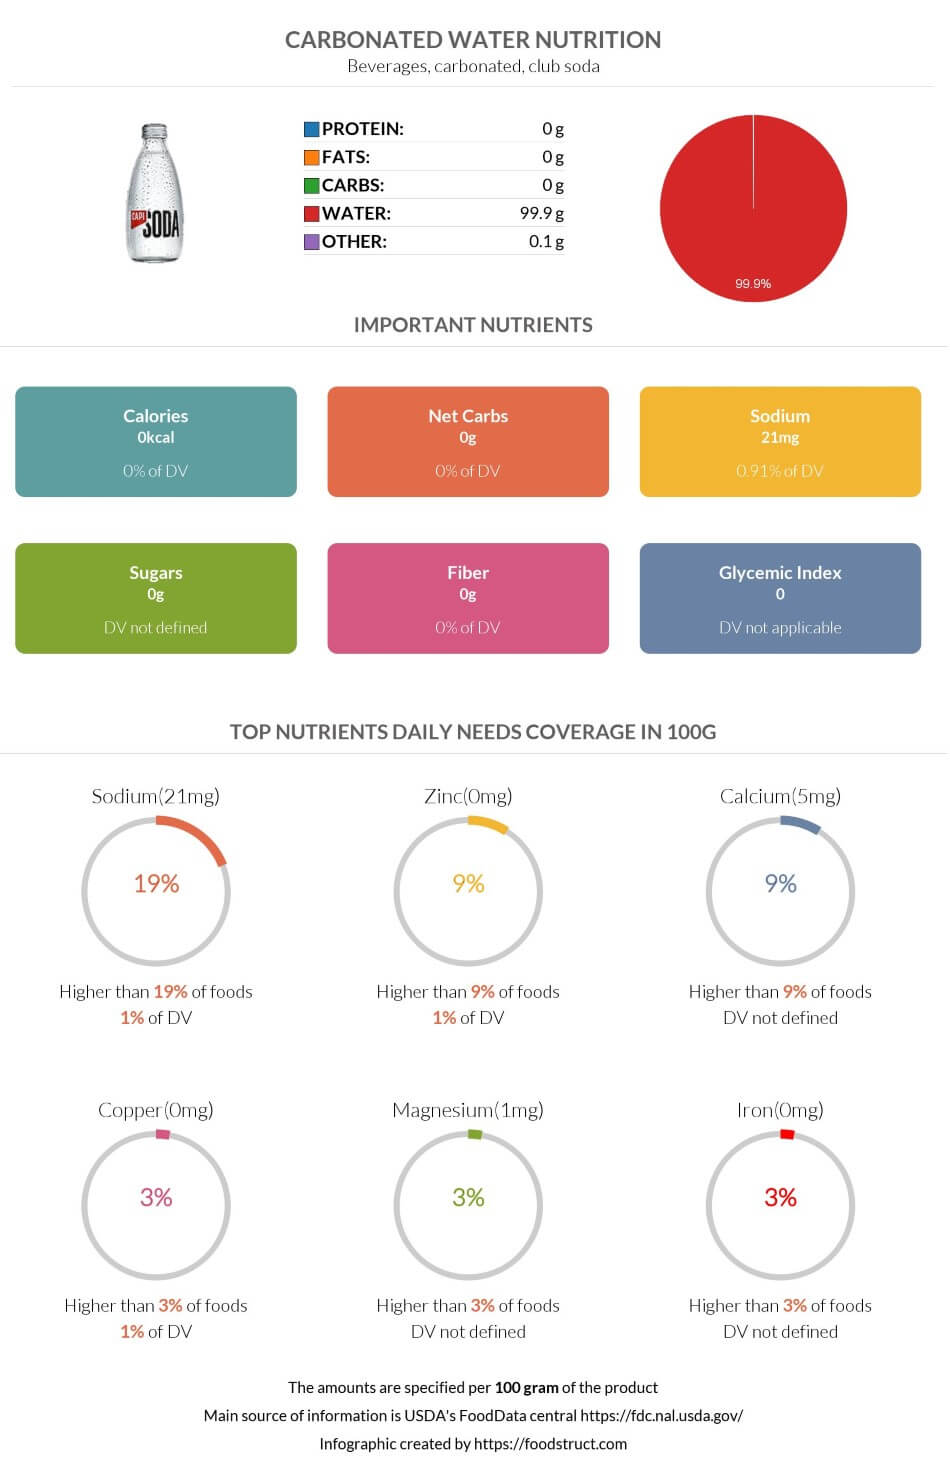 Carbonated water nutrition infographic